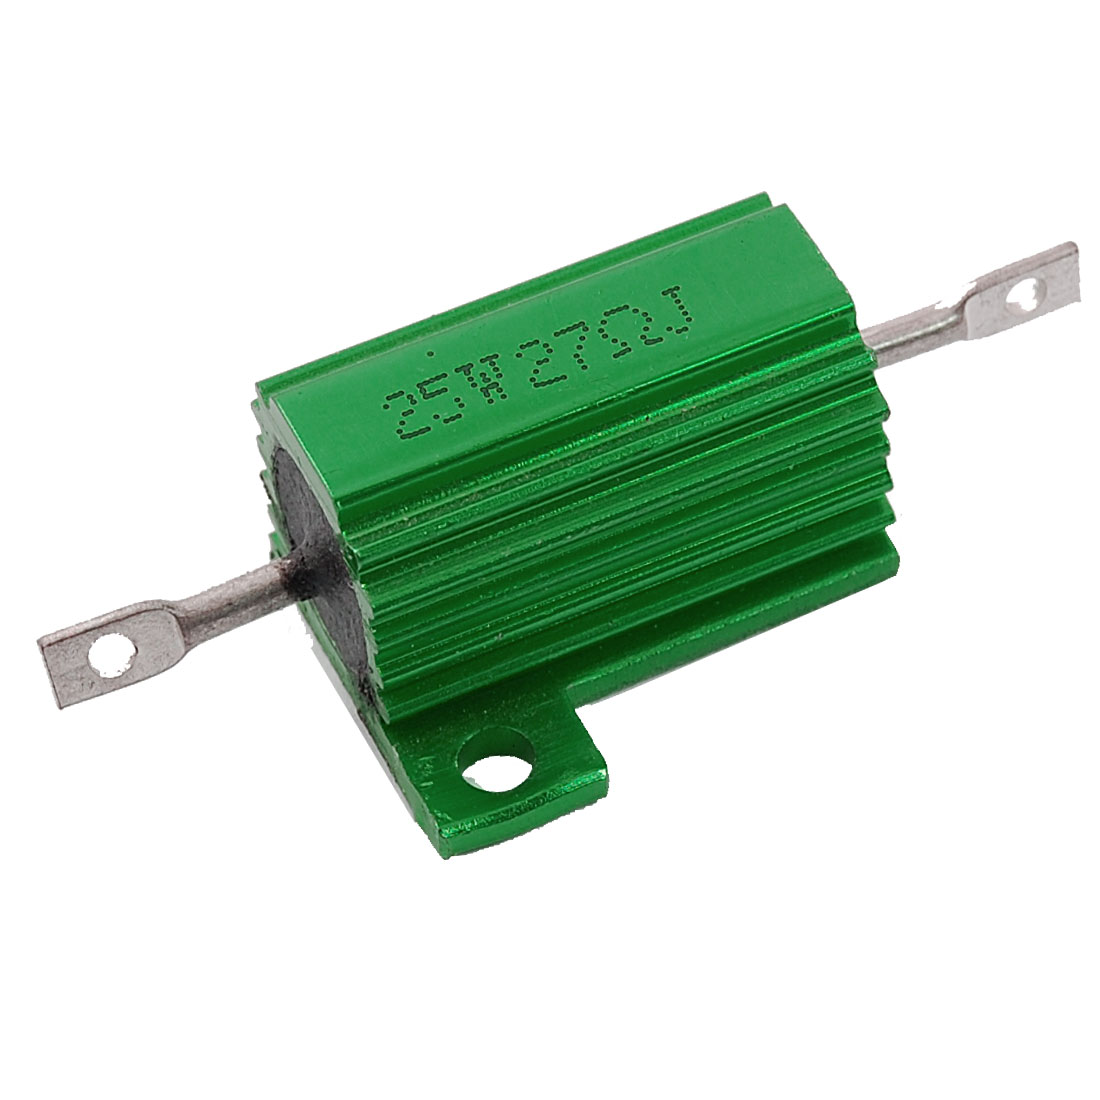 Green 25 Watt 27 Ohm 5% Aluminum Housed Wire Wound Resistor